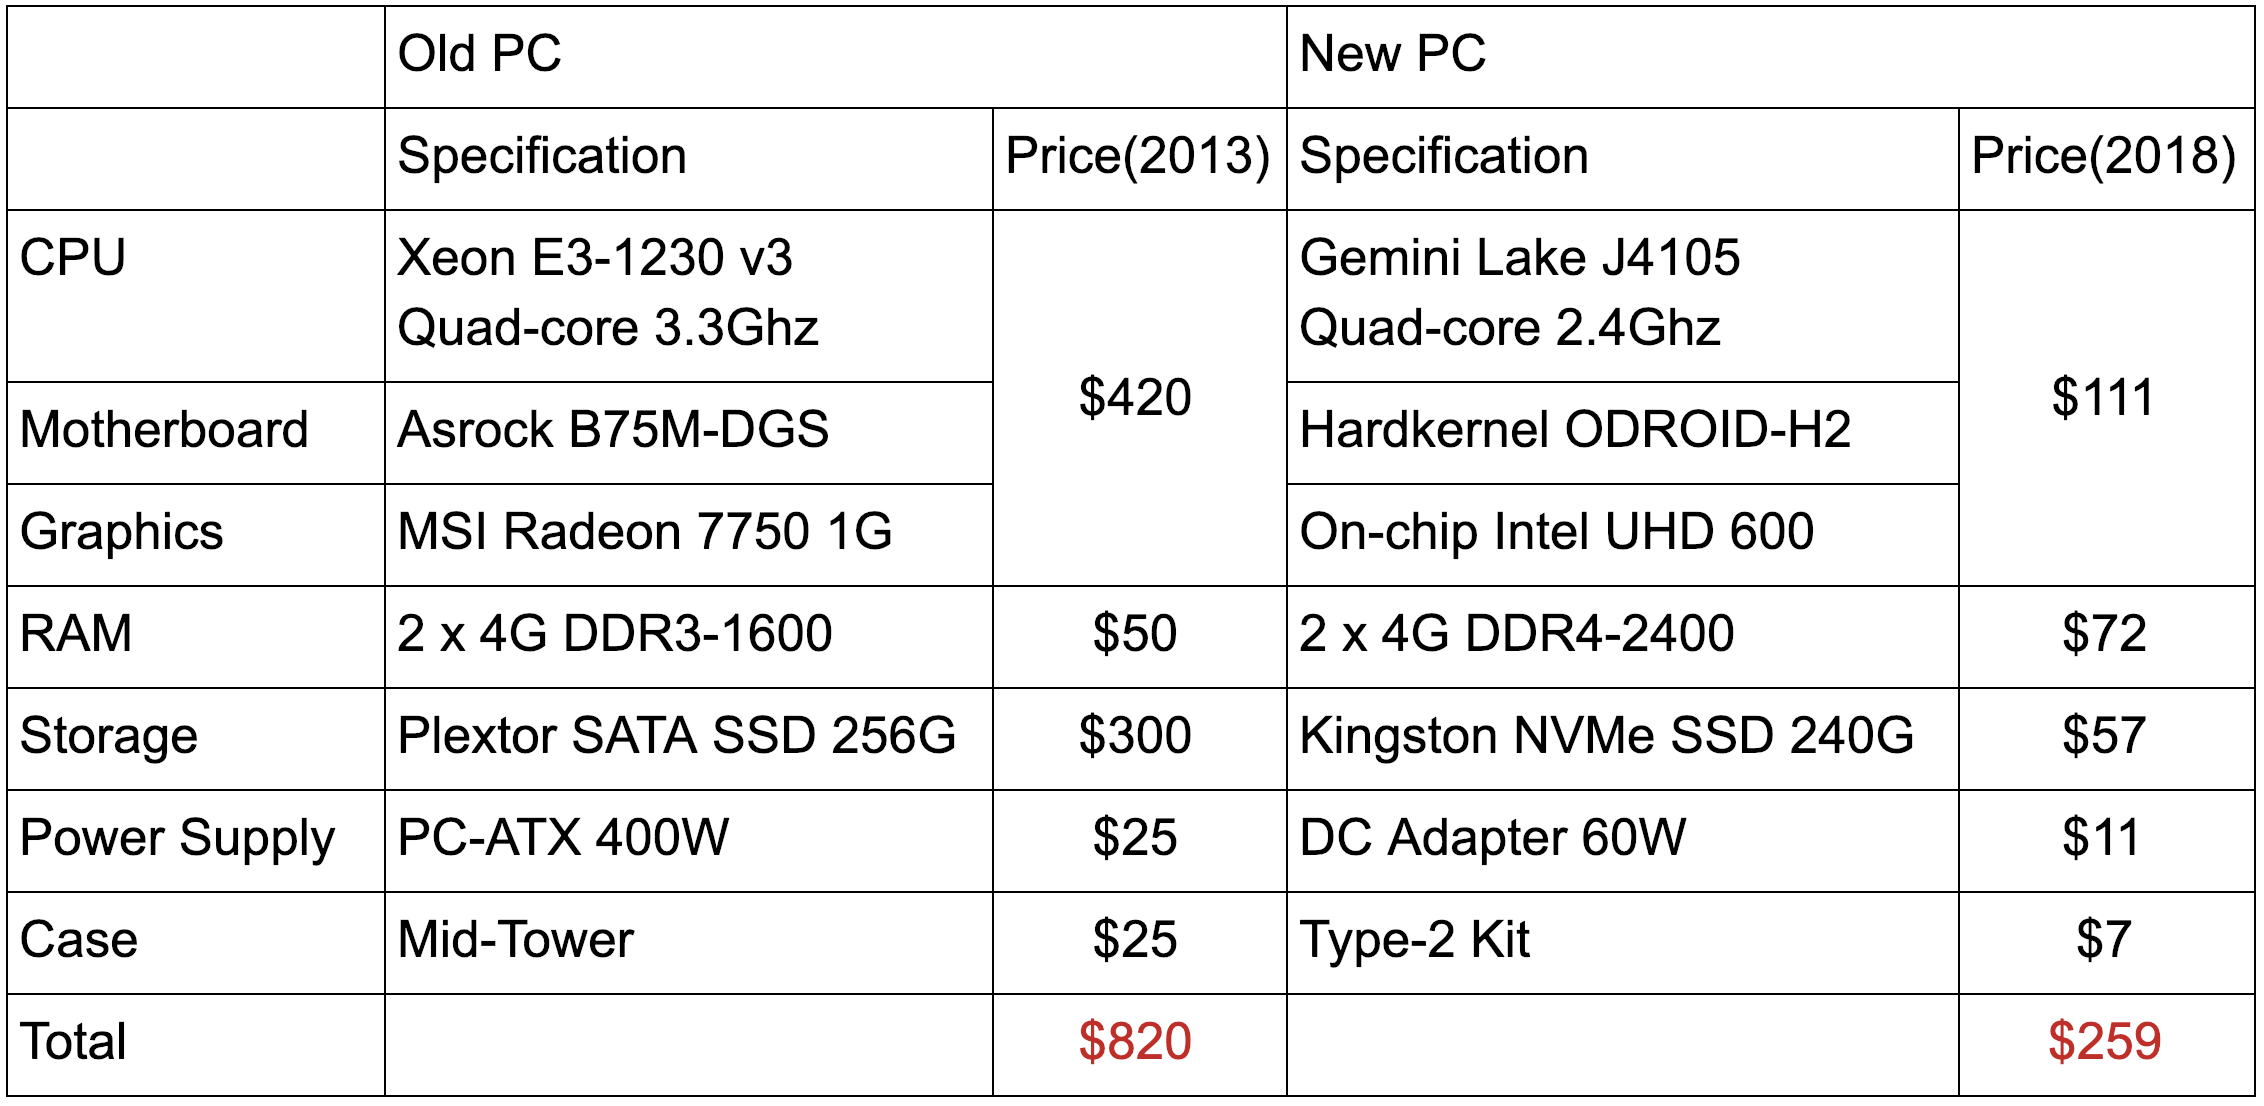 Print Odroid Magazine Wiringpi Read Mode Table 1 Justins Old Pc And New H2 Component Price Comparison